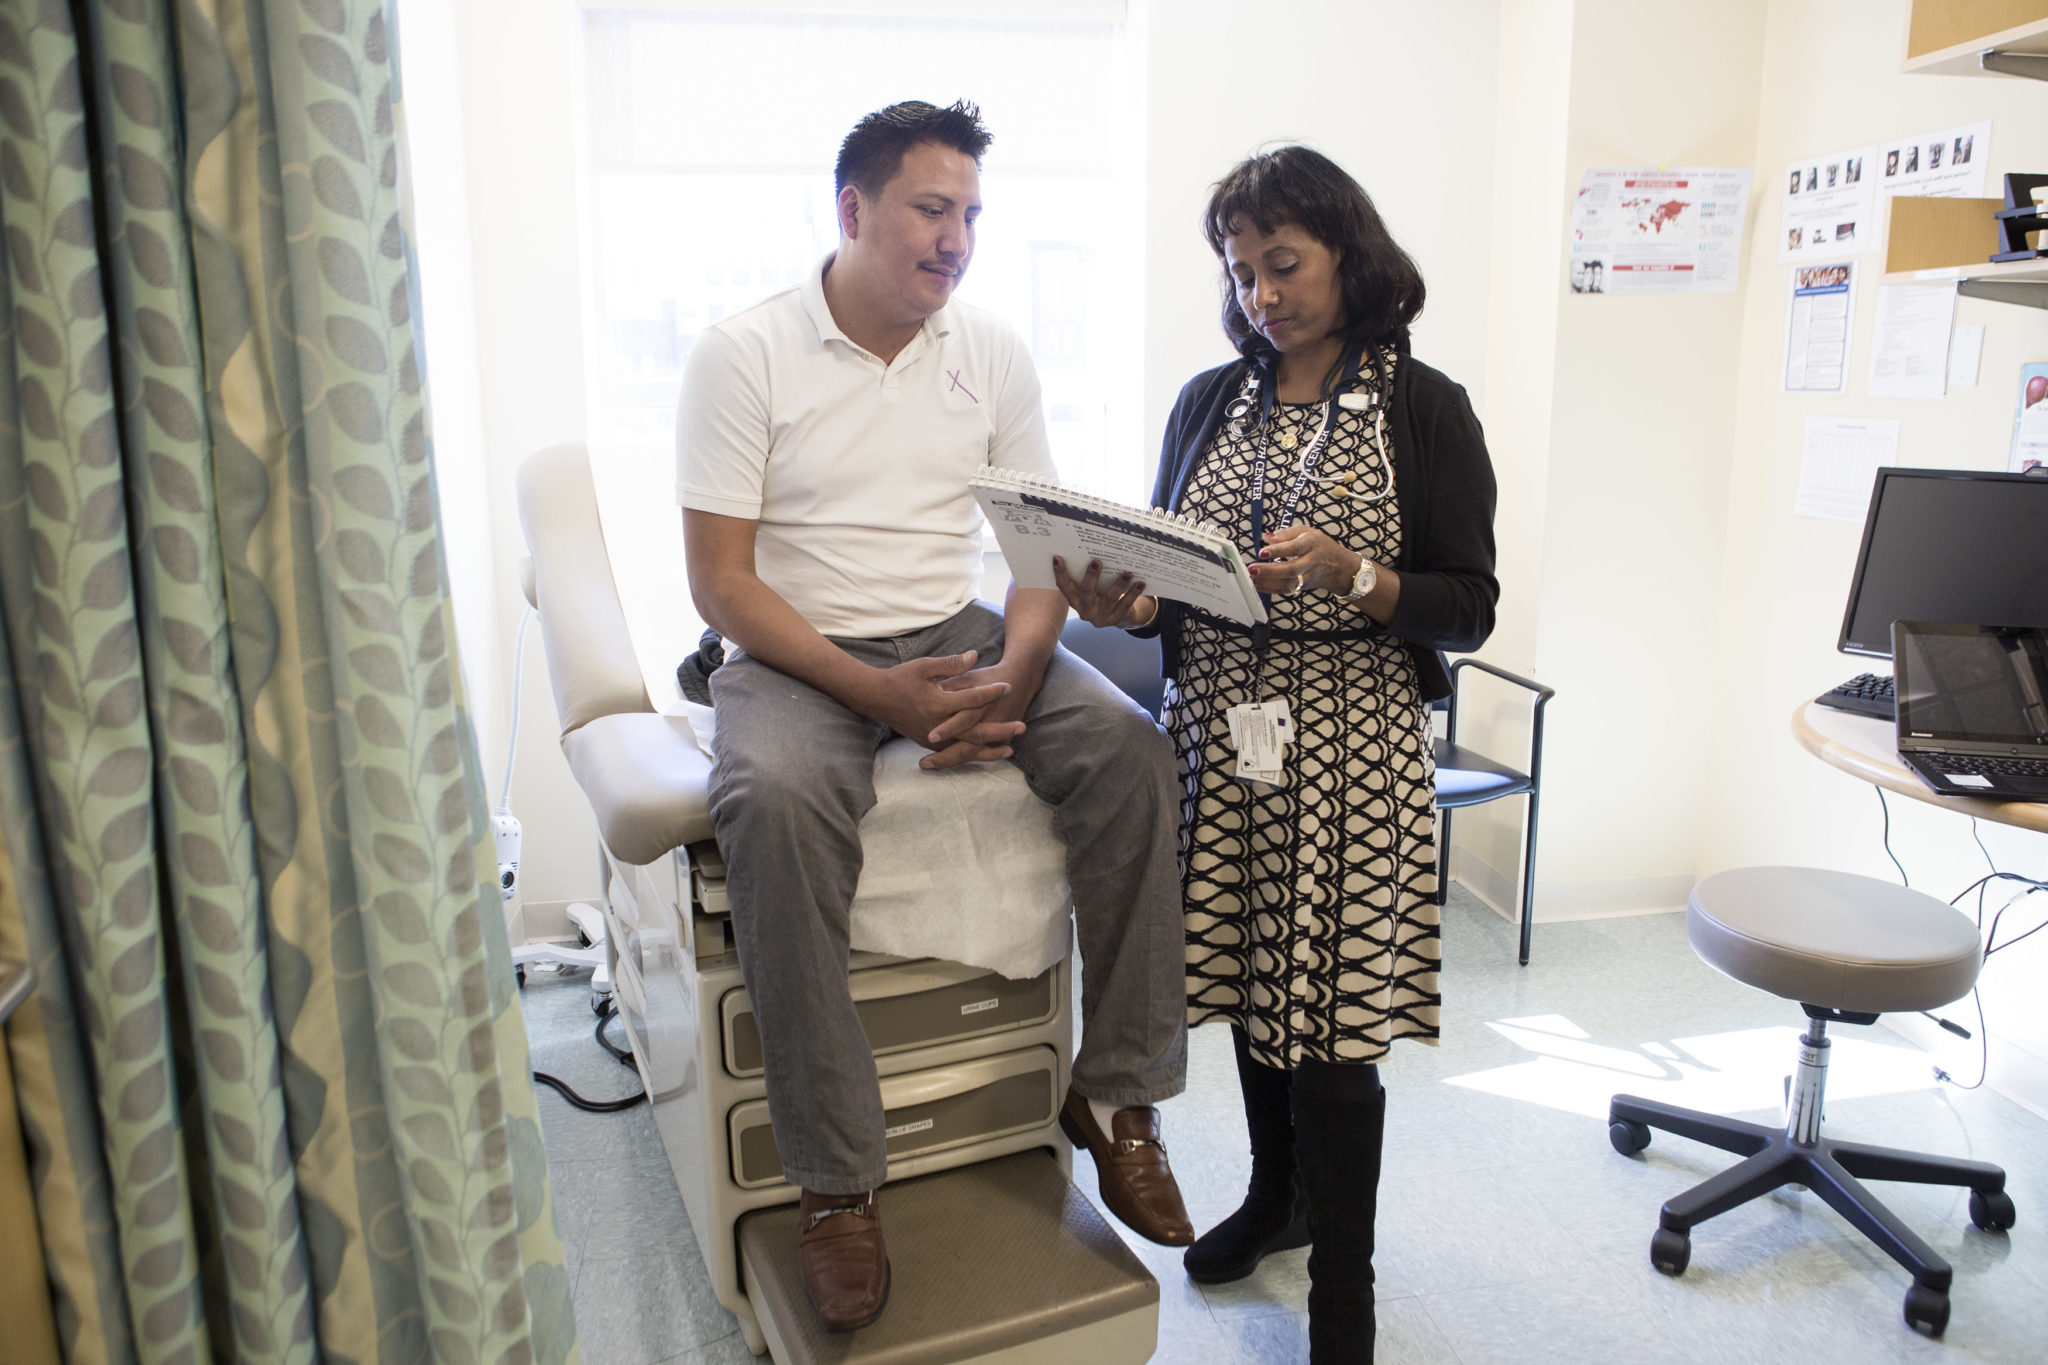 Dr. Hanna Haptu, right, discussing TB infection with a patient who was diagnosed with latent tuberculosis two months ago. He visits the clinic in Lynn monthly. Photo by Kayana Szymczak for STAT